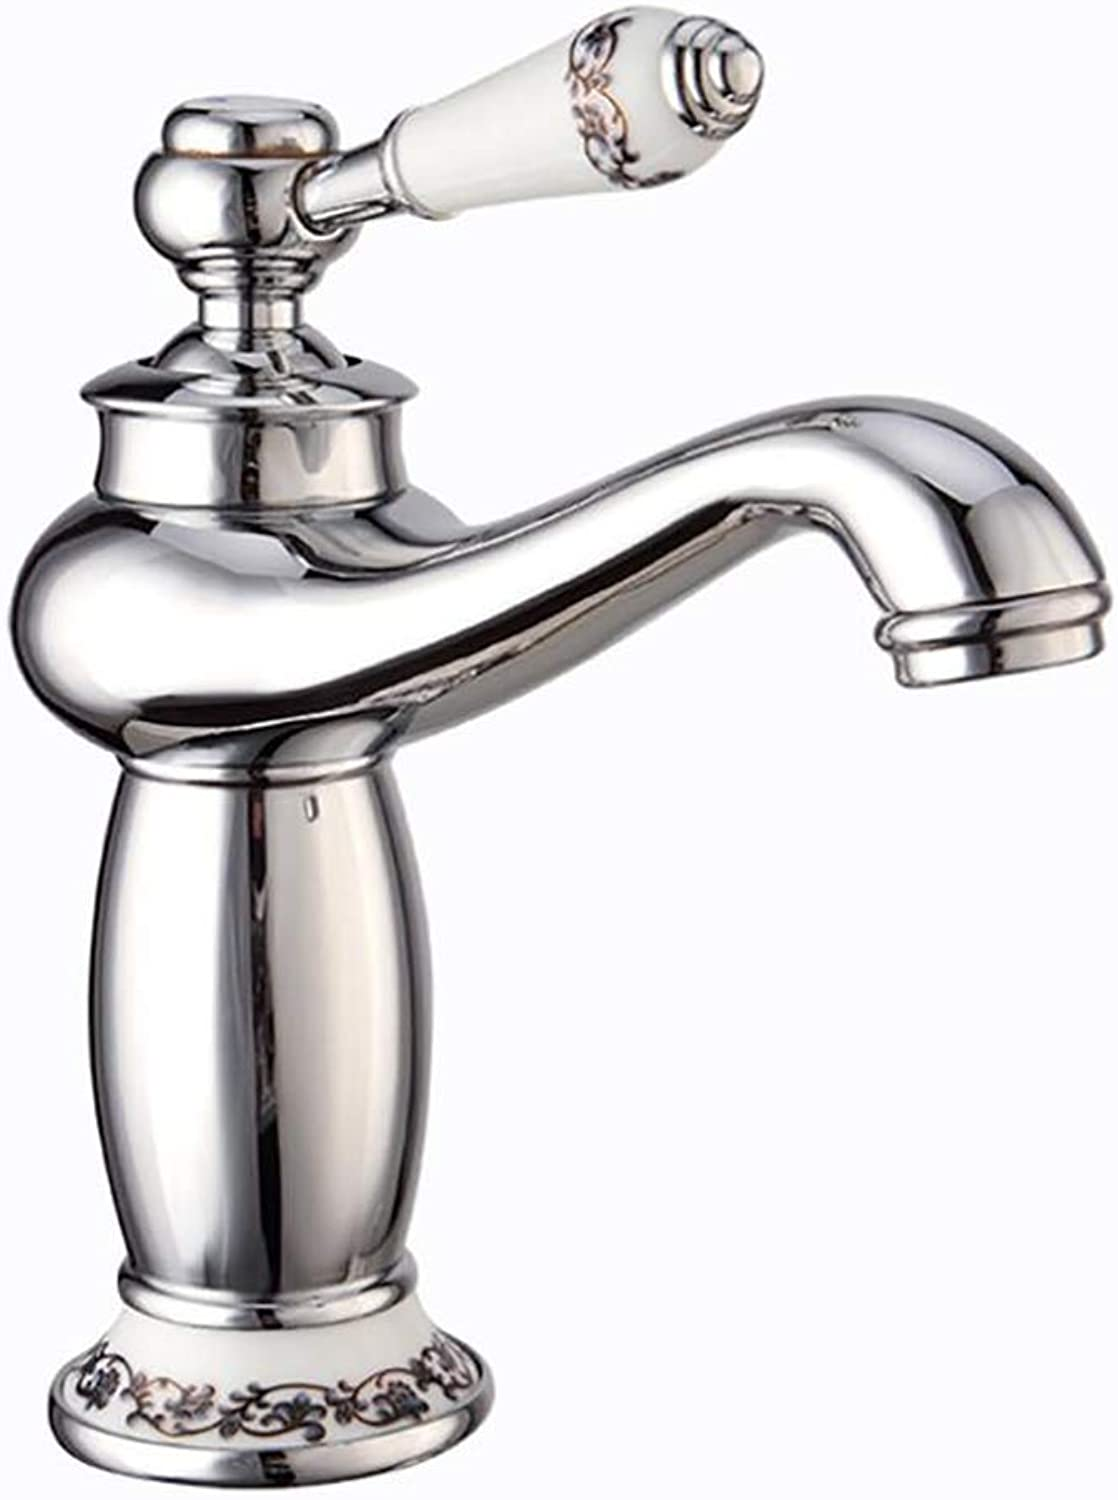 LINLIN Copper chrome faucet hot and cold water mixing single hole basin water-tap kitchen bathroom sink accessories,Silver